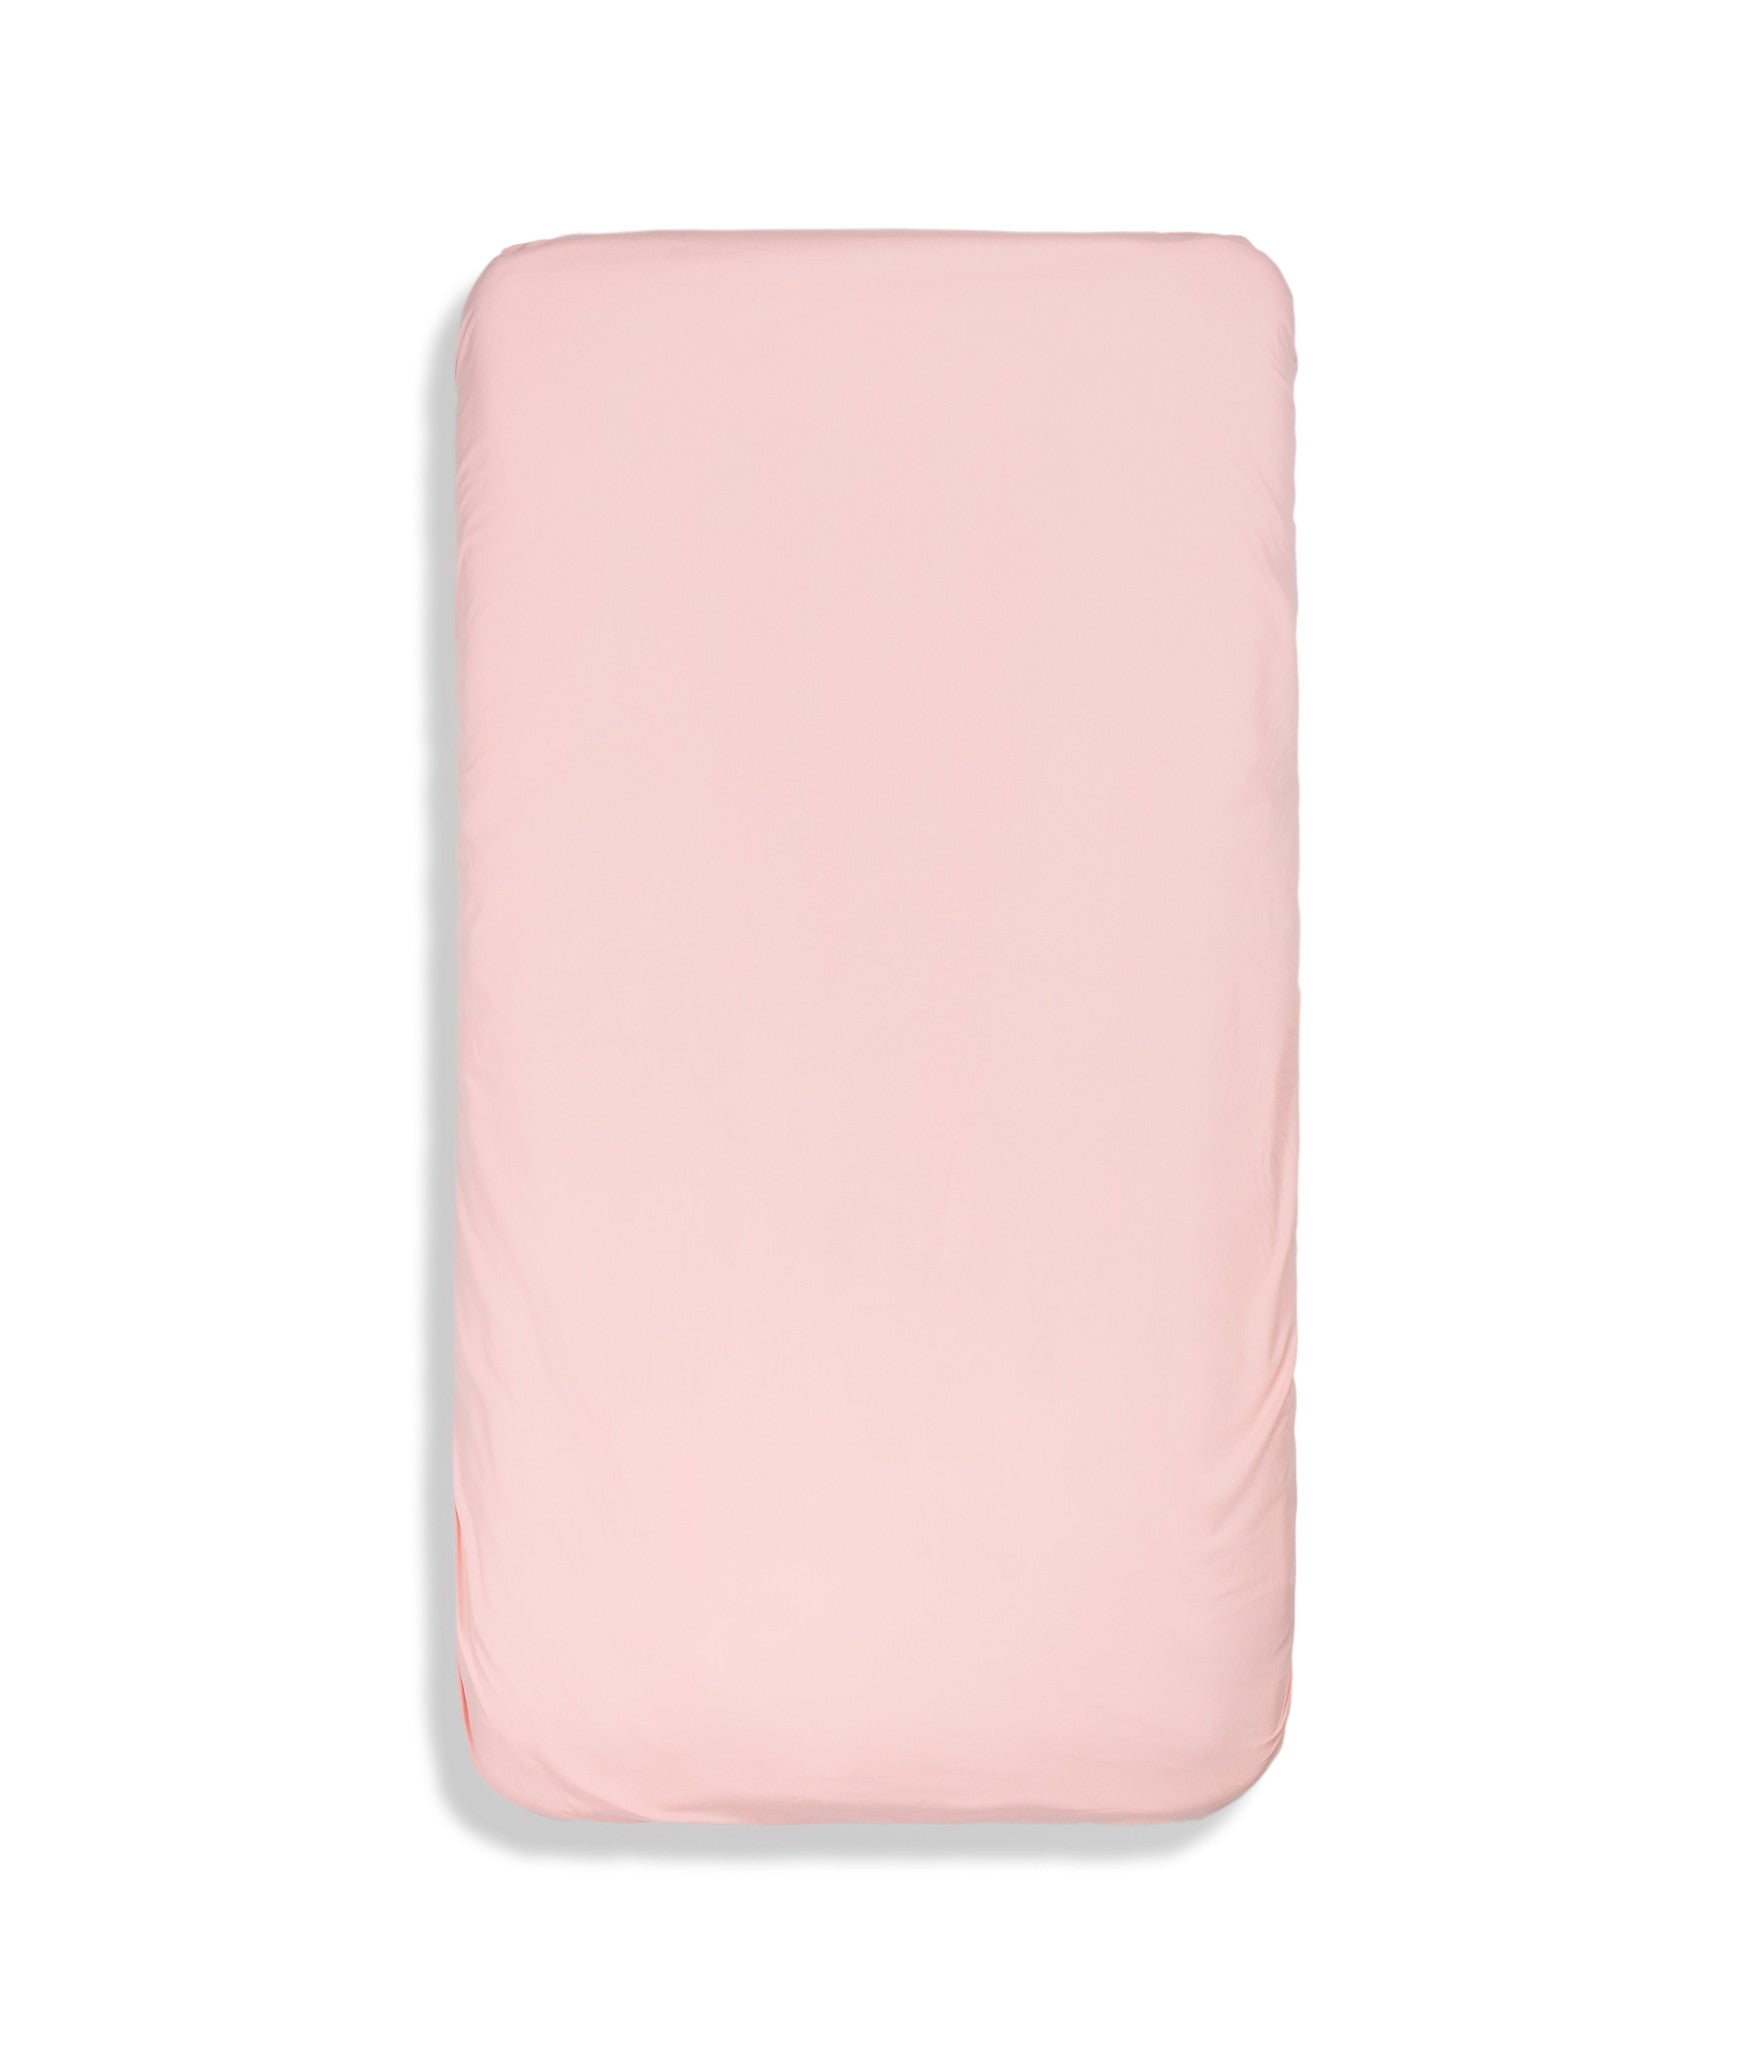 Organic cotton solid colour kids fitted sheet. Fully elasticized. Pink colour.